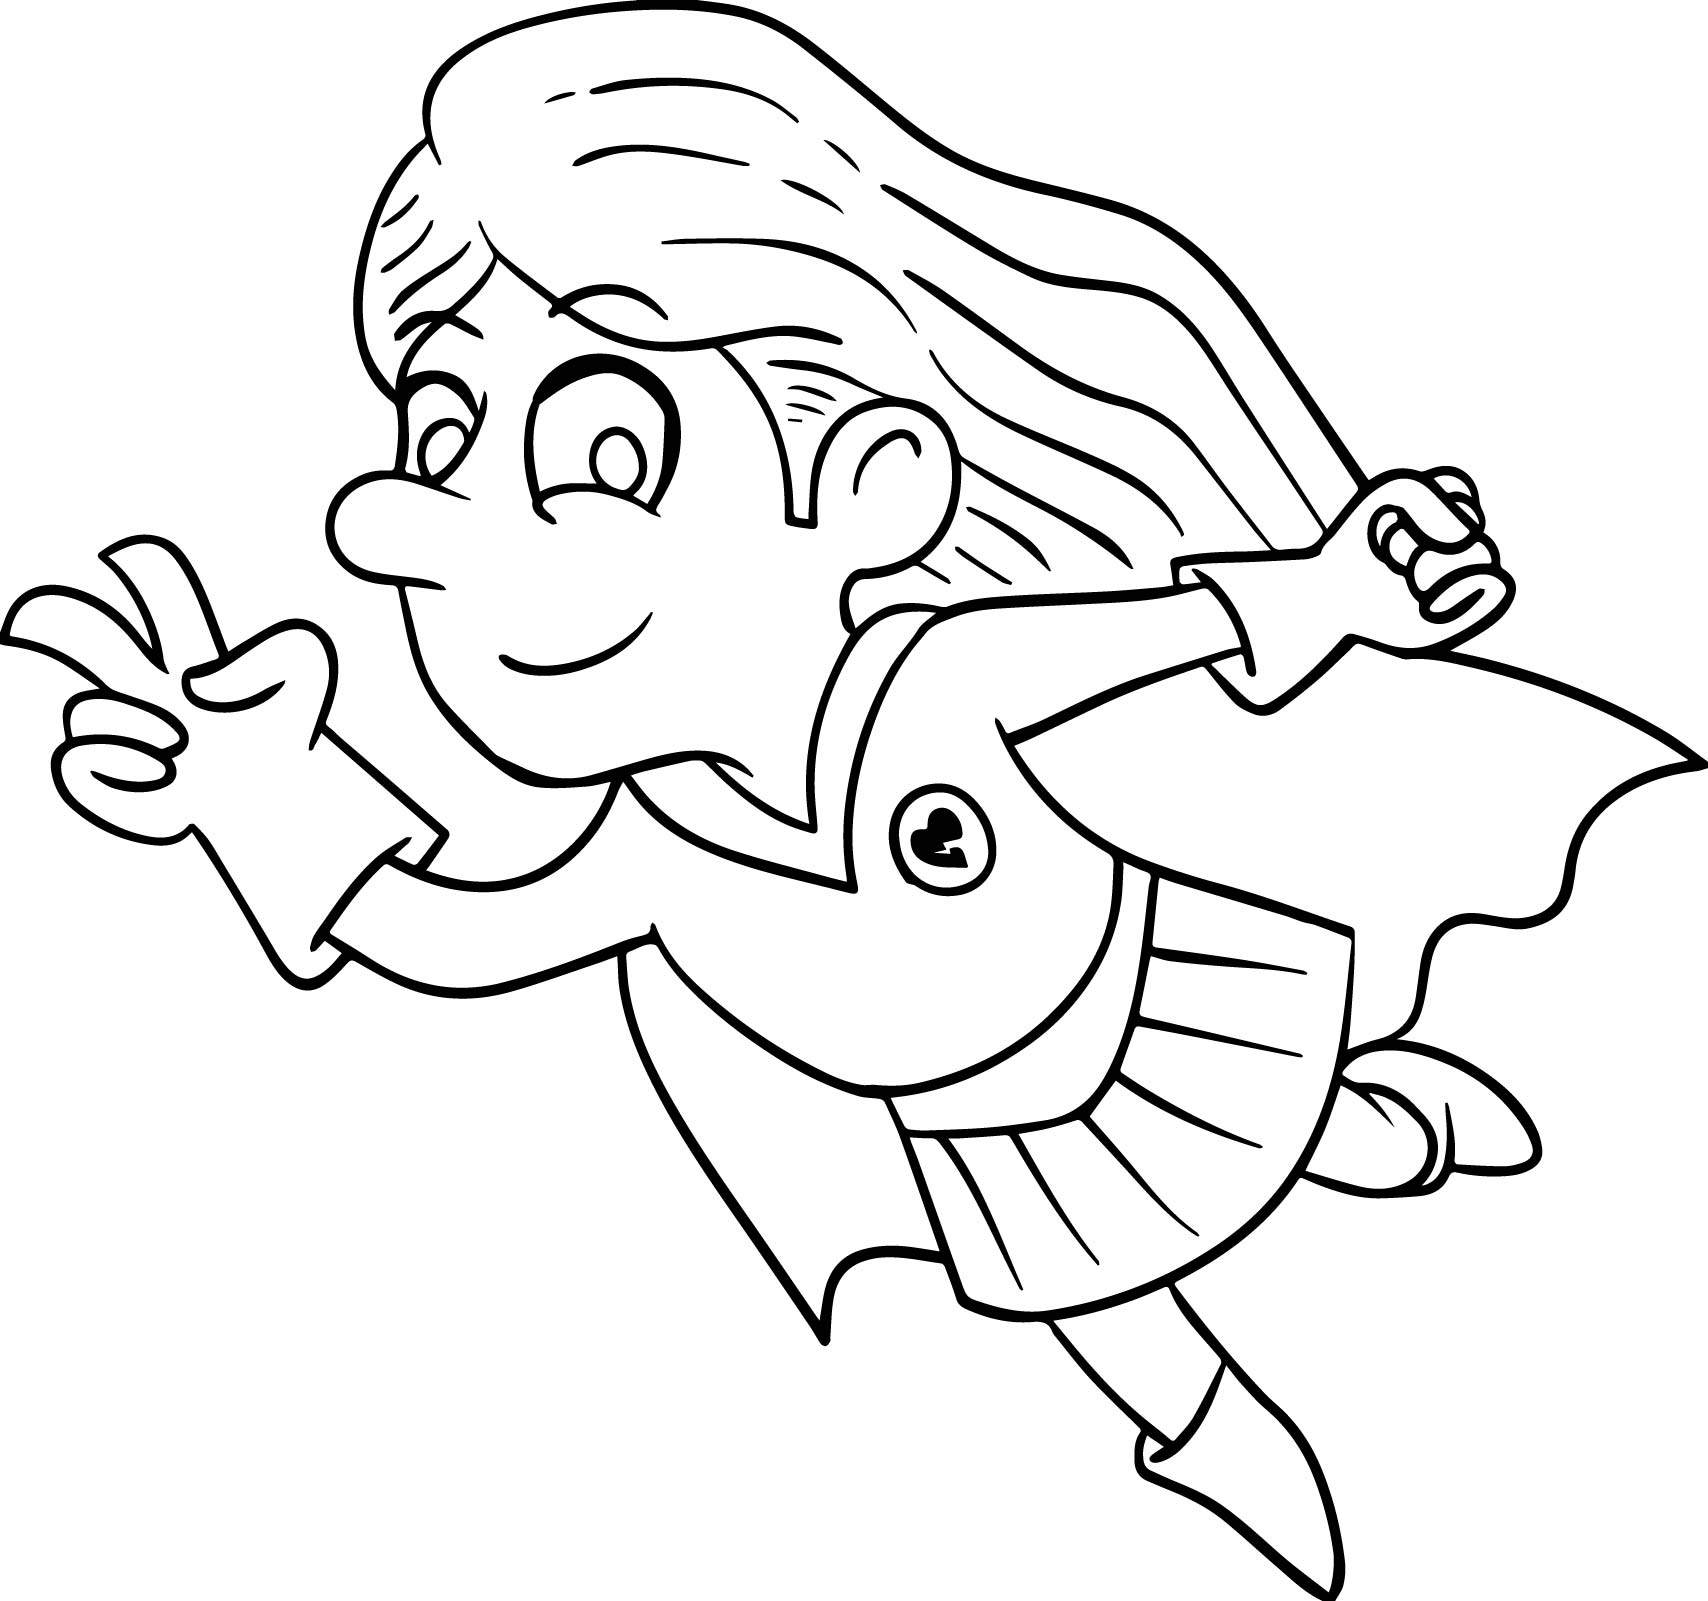 Superheroes Kid Girl Coloring Page